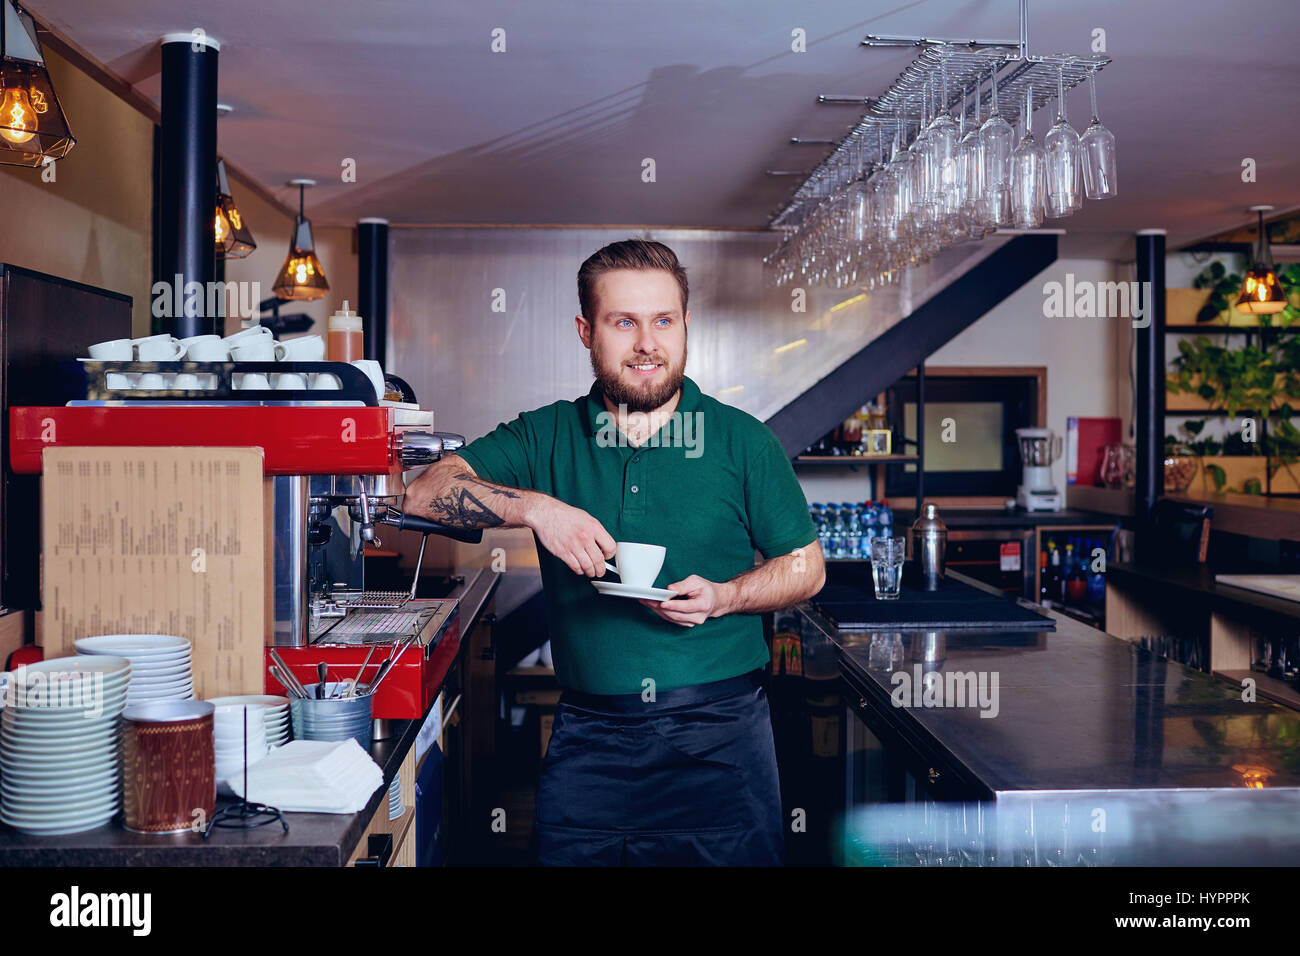 Bartender barista with coffee in hand behind the bar - Stock Image